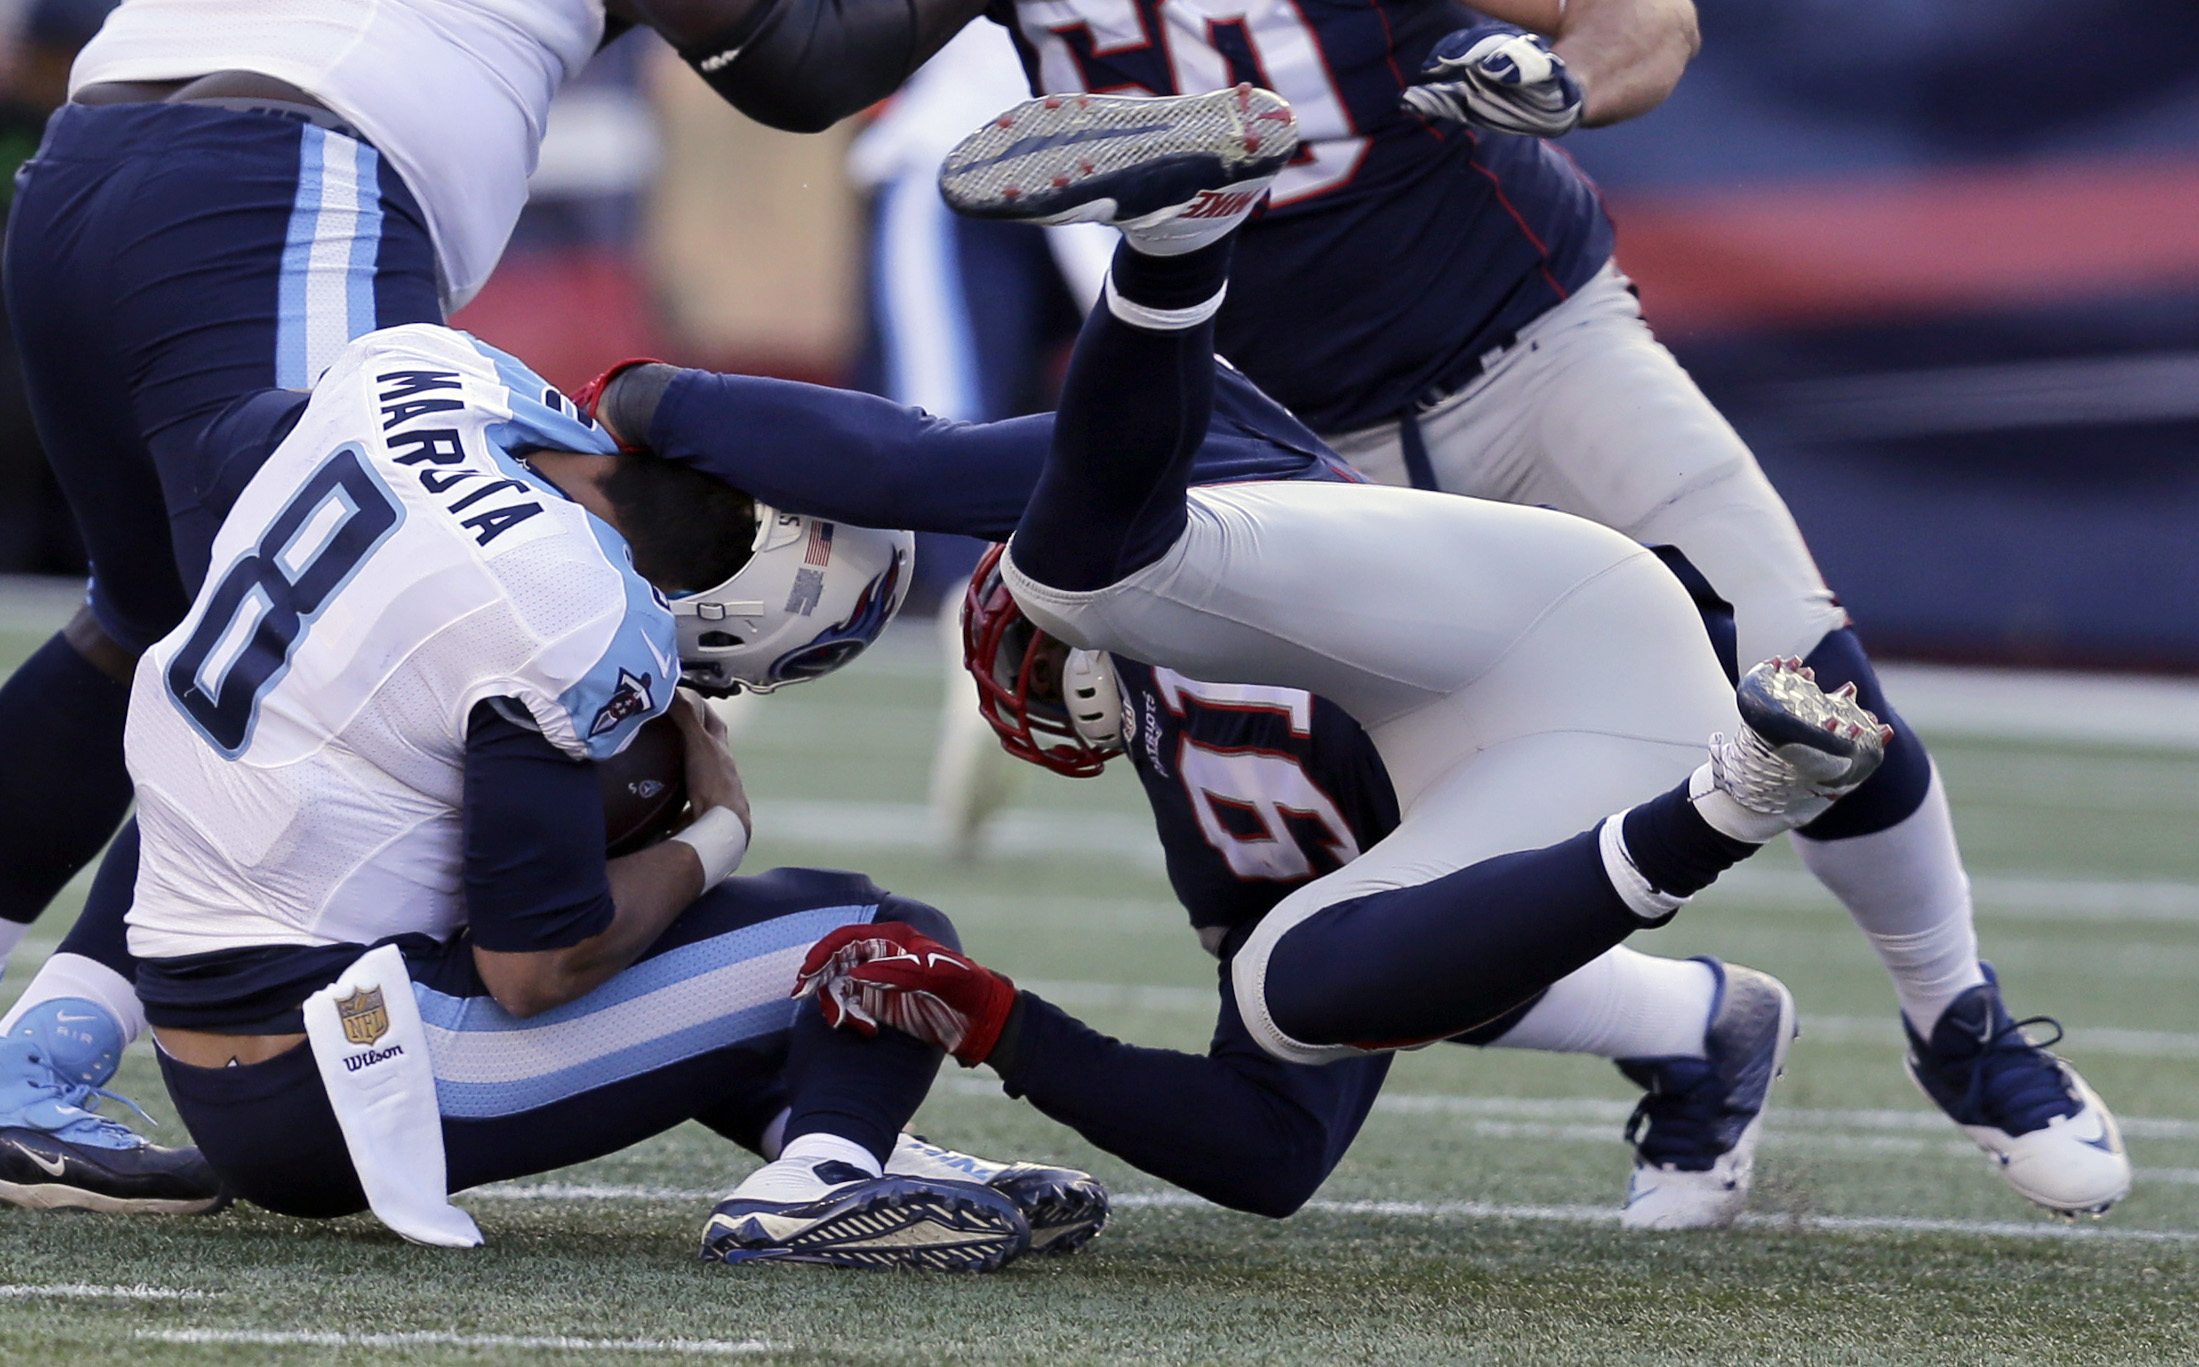 New England Patriots linebacker Jamie Collins (91) sacks Tennessee Titans quarterback Marcus Mariota (8) in the first half of an NFL football game, Sunday, Dec. 20, 2015, in Foxborough, Mass. Mariota was injured on the play.  (AP Photo/Charles Krupa)